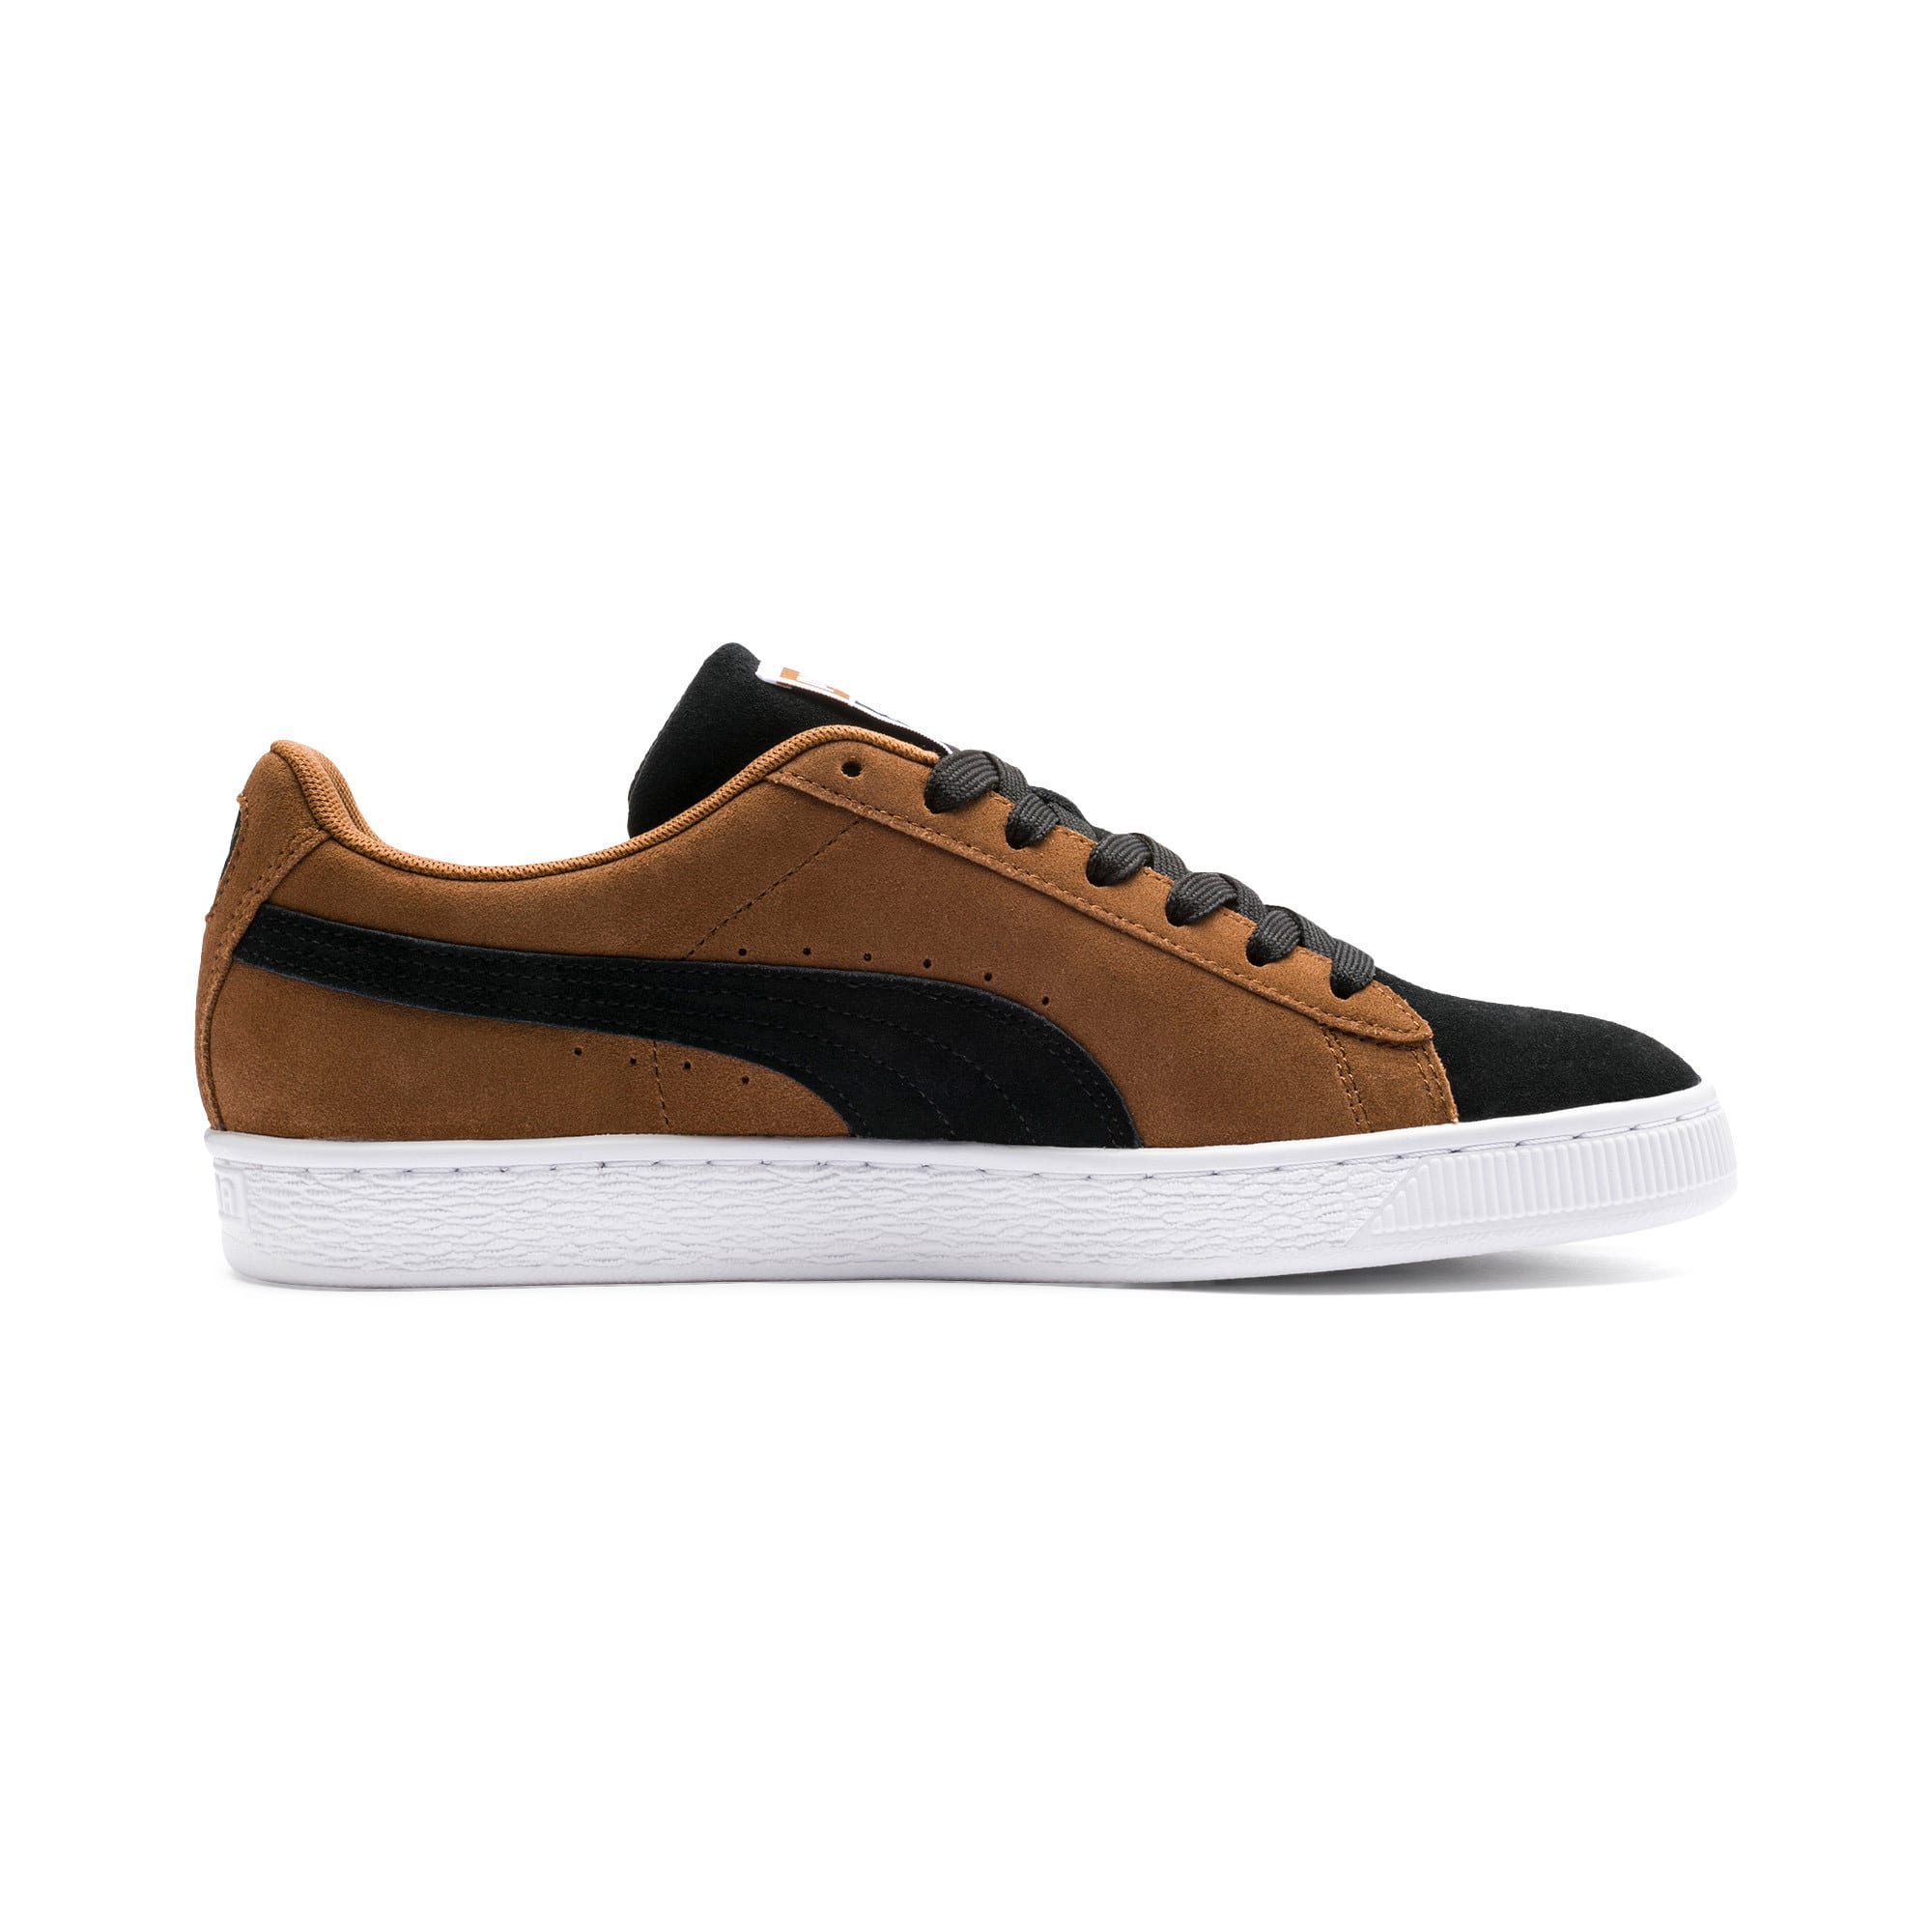 Thumbnail 6 of Suede Classic Sneakers, Dachsund-Puma Black-P Wht, medium